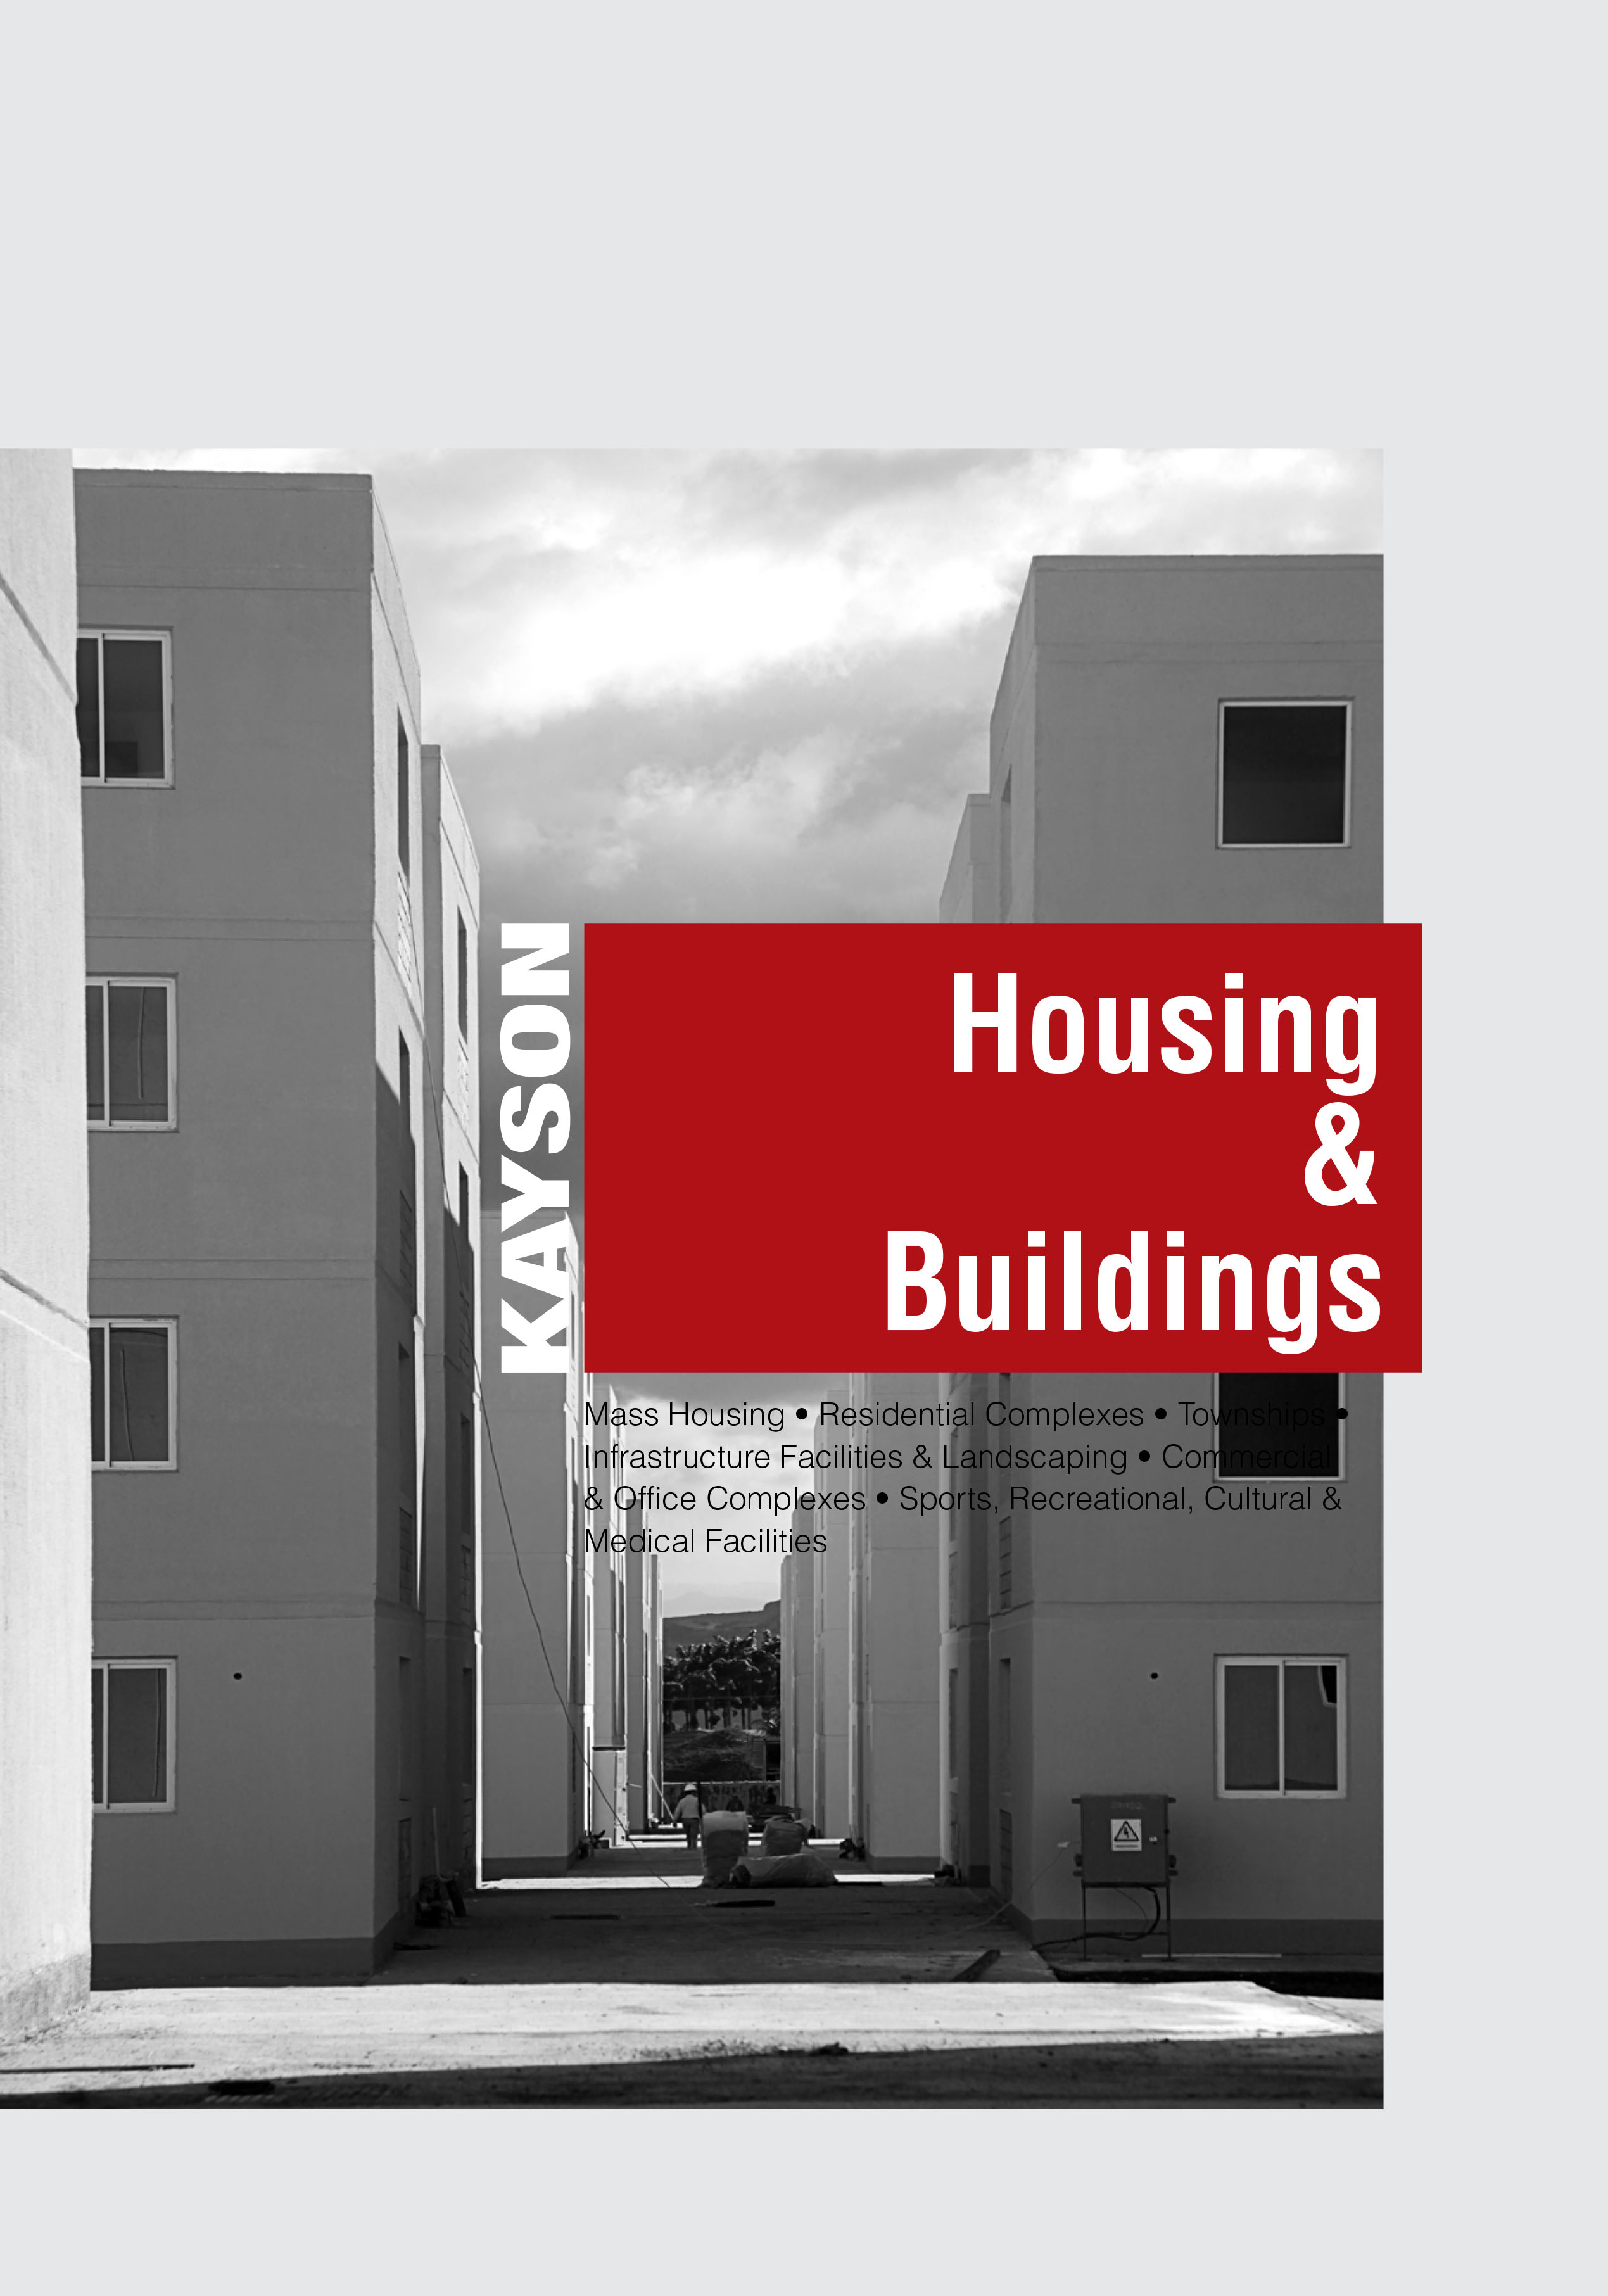 Housing & Buildings